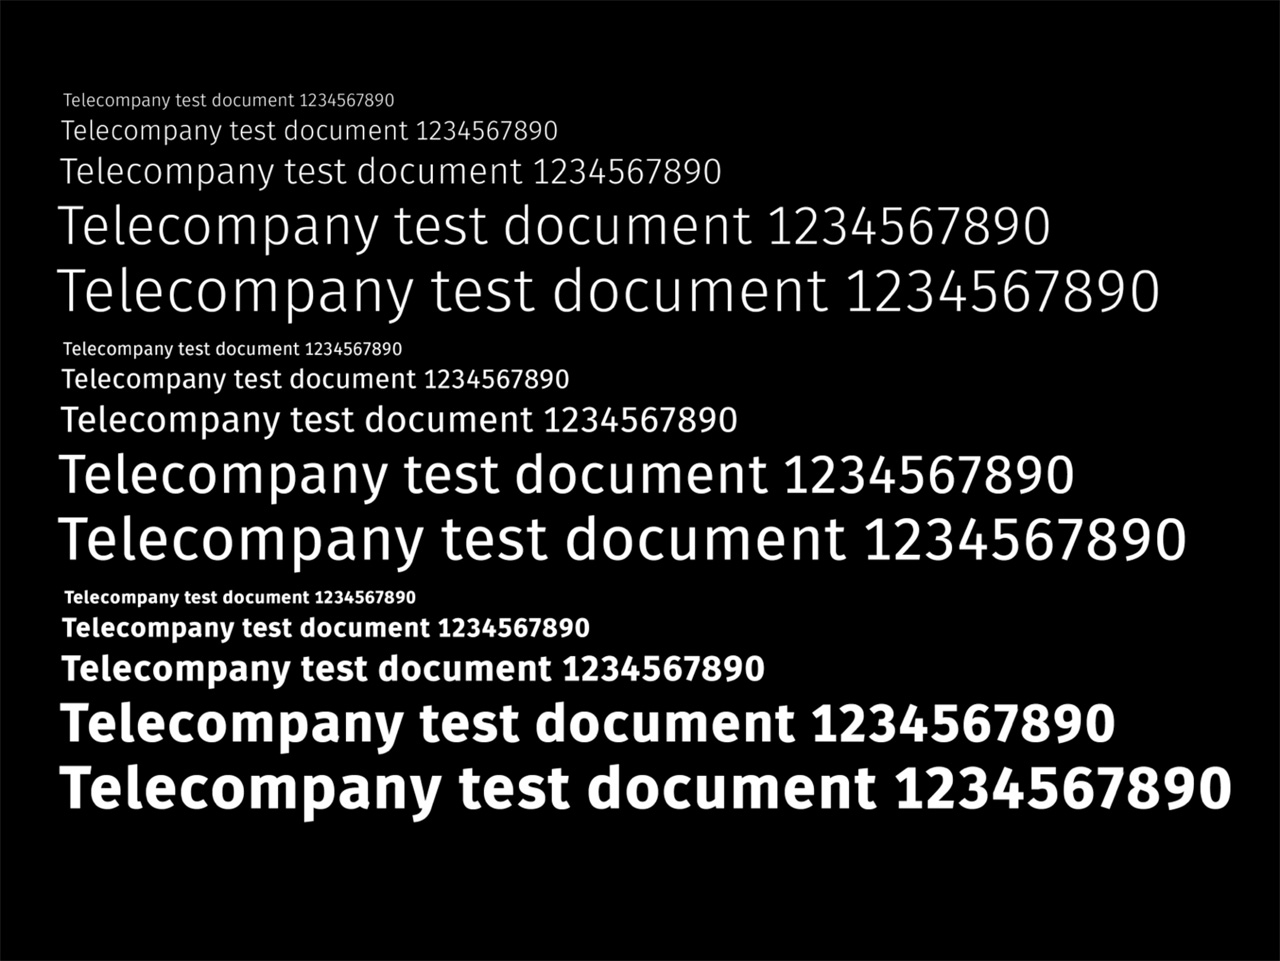 6 Telecompany test document